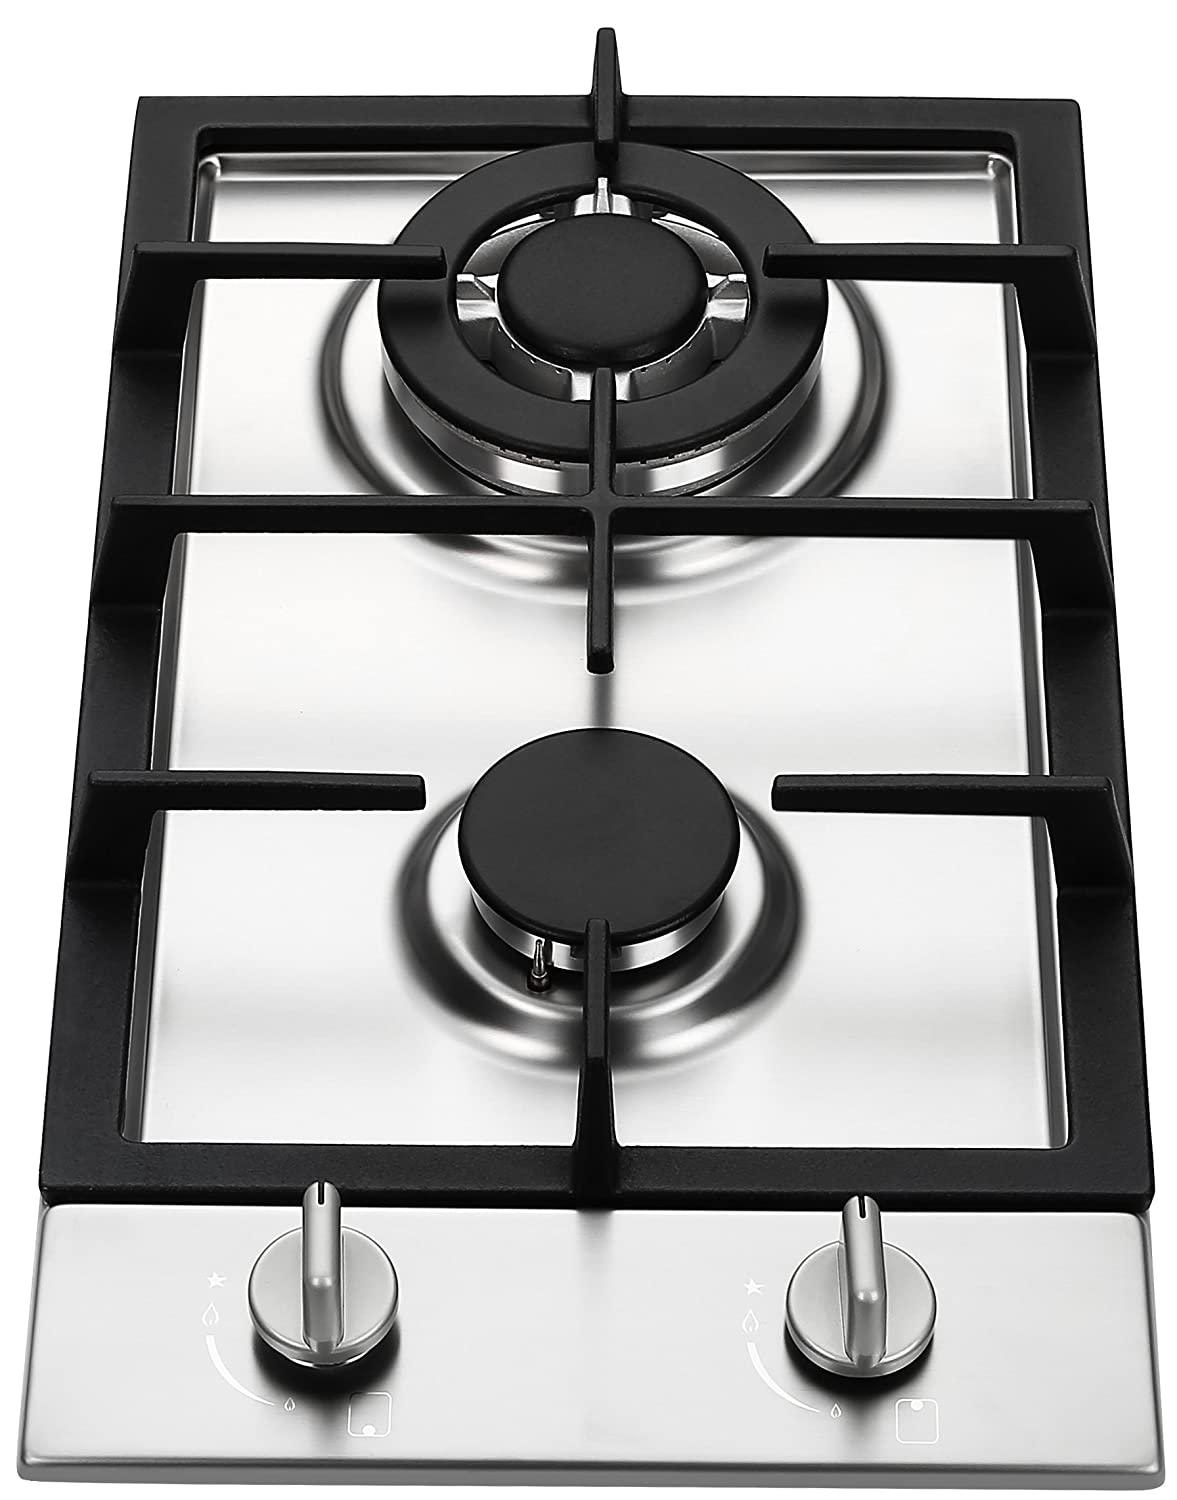 Ramblewood GC2-37P (LPG/Propane Gas) high efficiency 2 burner gas cooktop Ramblewood Green